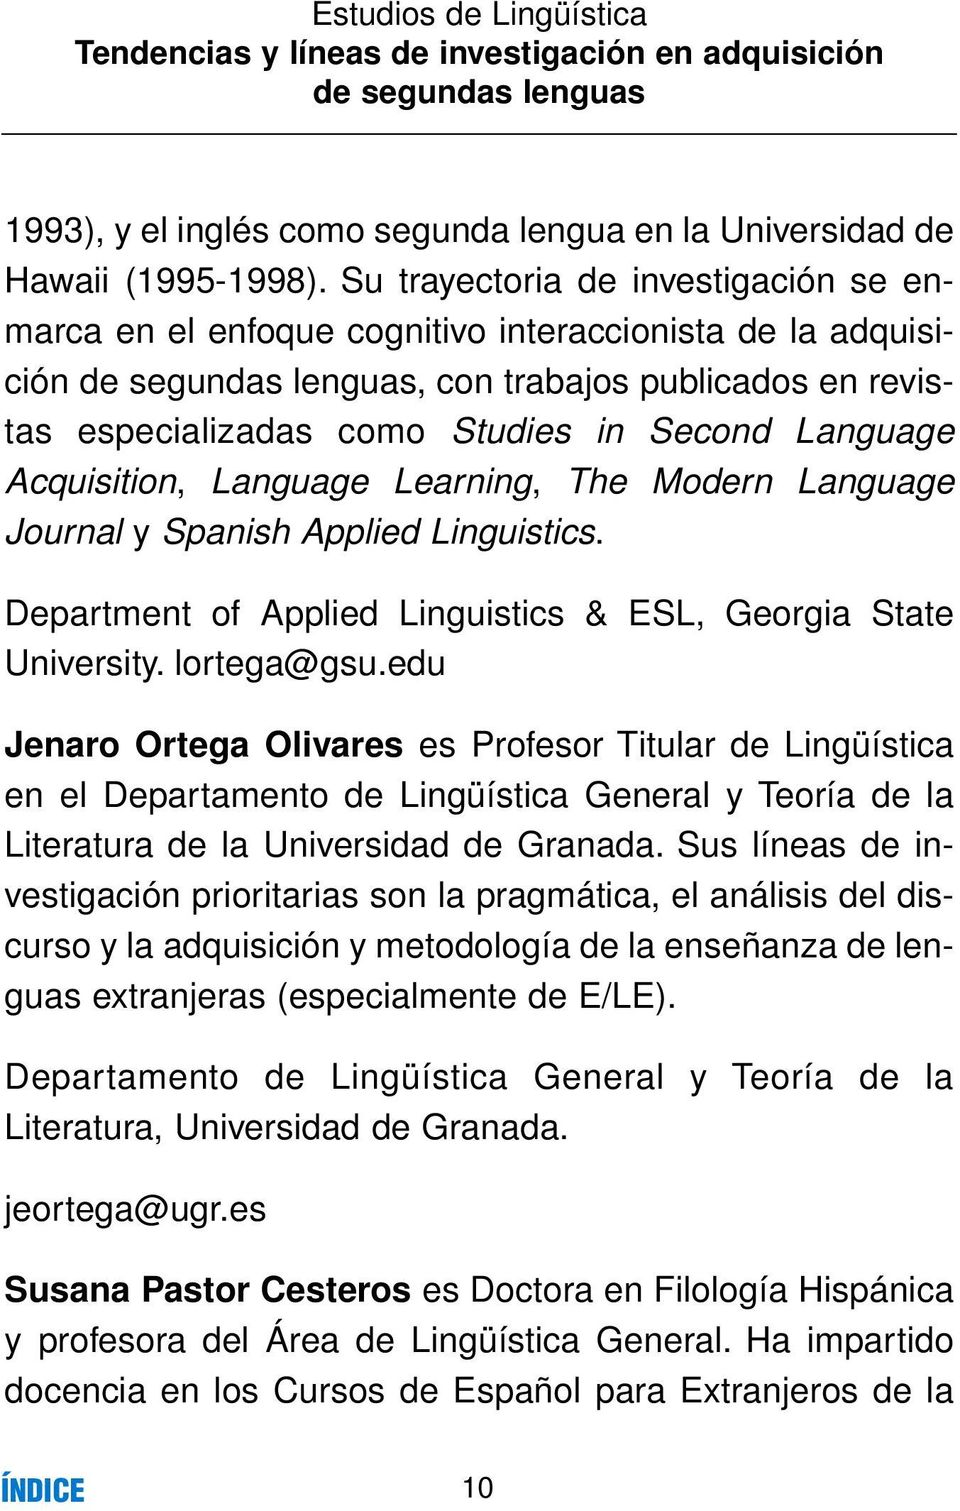 Language Acquisition, Language Learning, The Modern Language Journal y Spanish Applied Linguistics. Department of Applied Linguistics & ESL, Georgia State University. lortega@gsu.